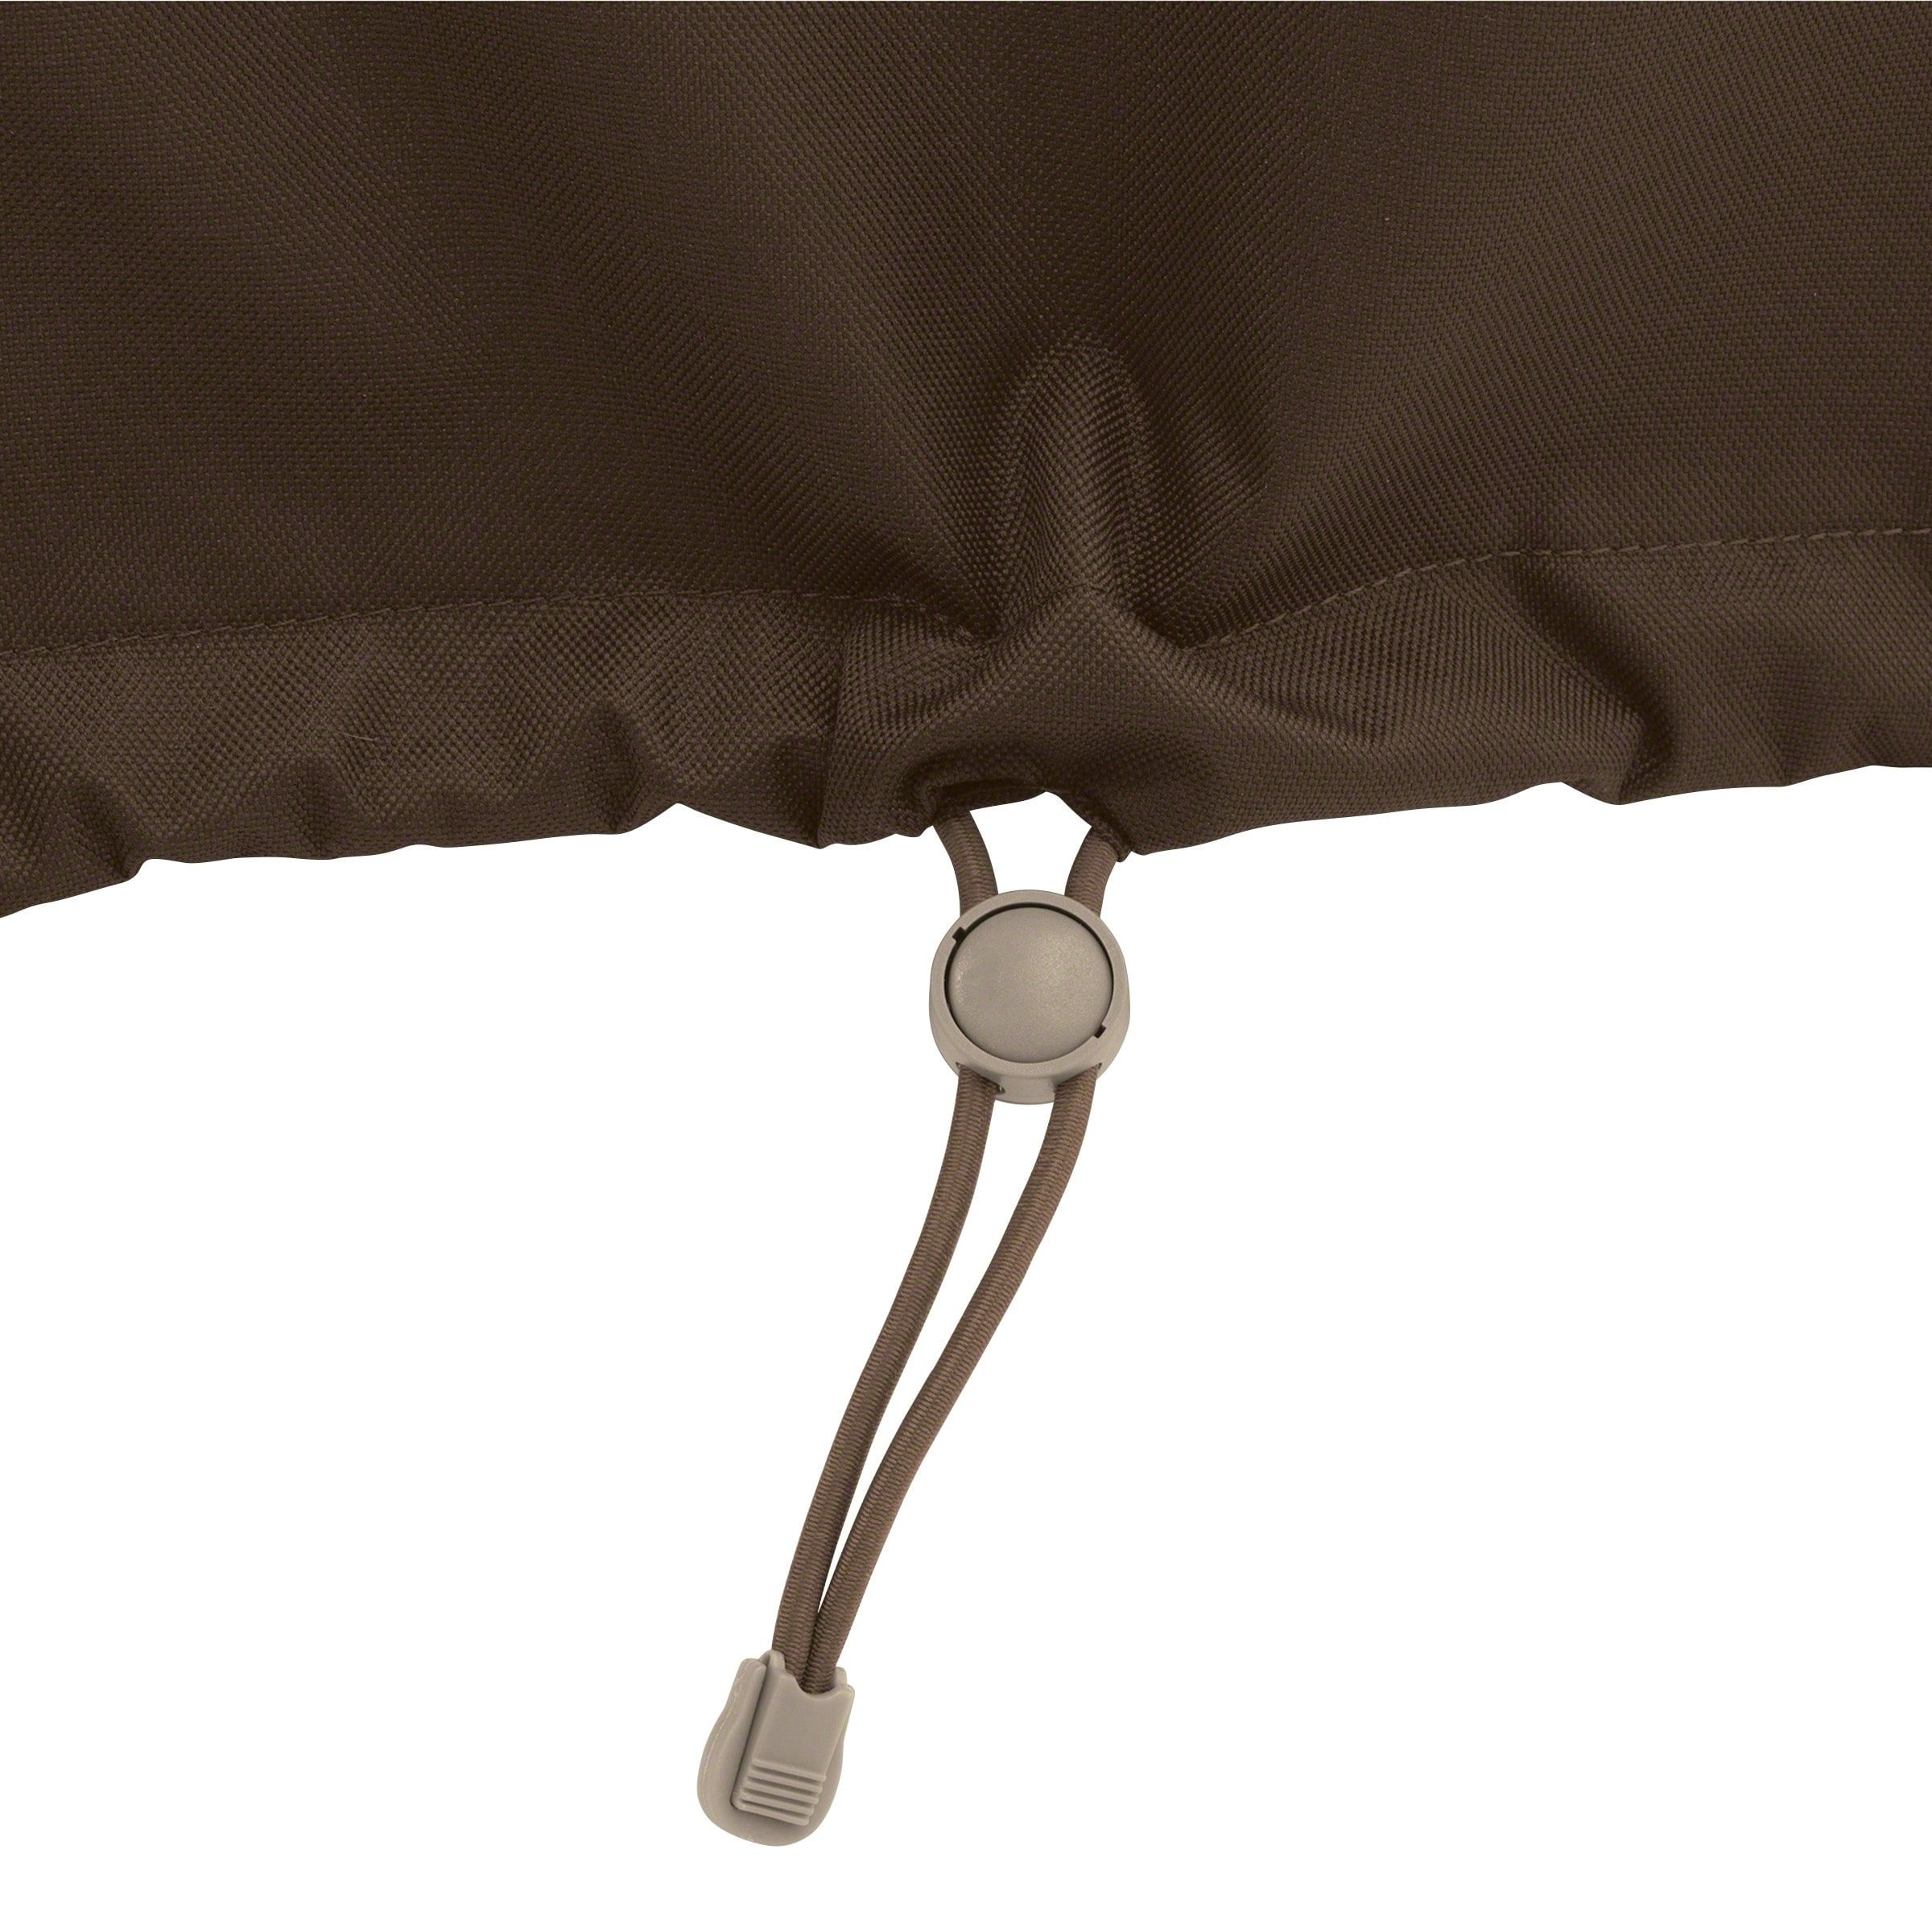 Exceptionnel Classic Accessories Madrona™ RainProof™ Patio Umbrella Cover, Brown  (Polyester) #55